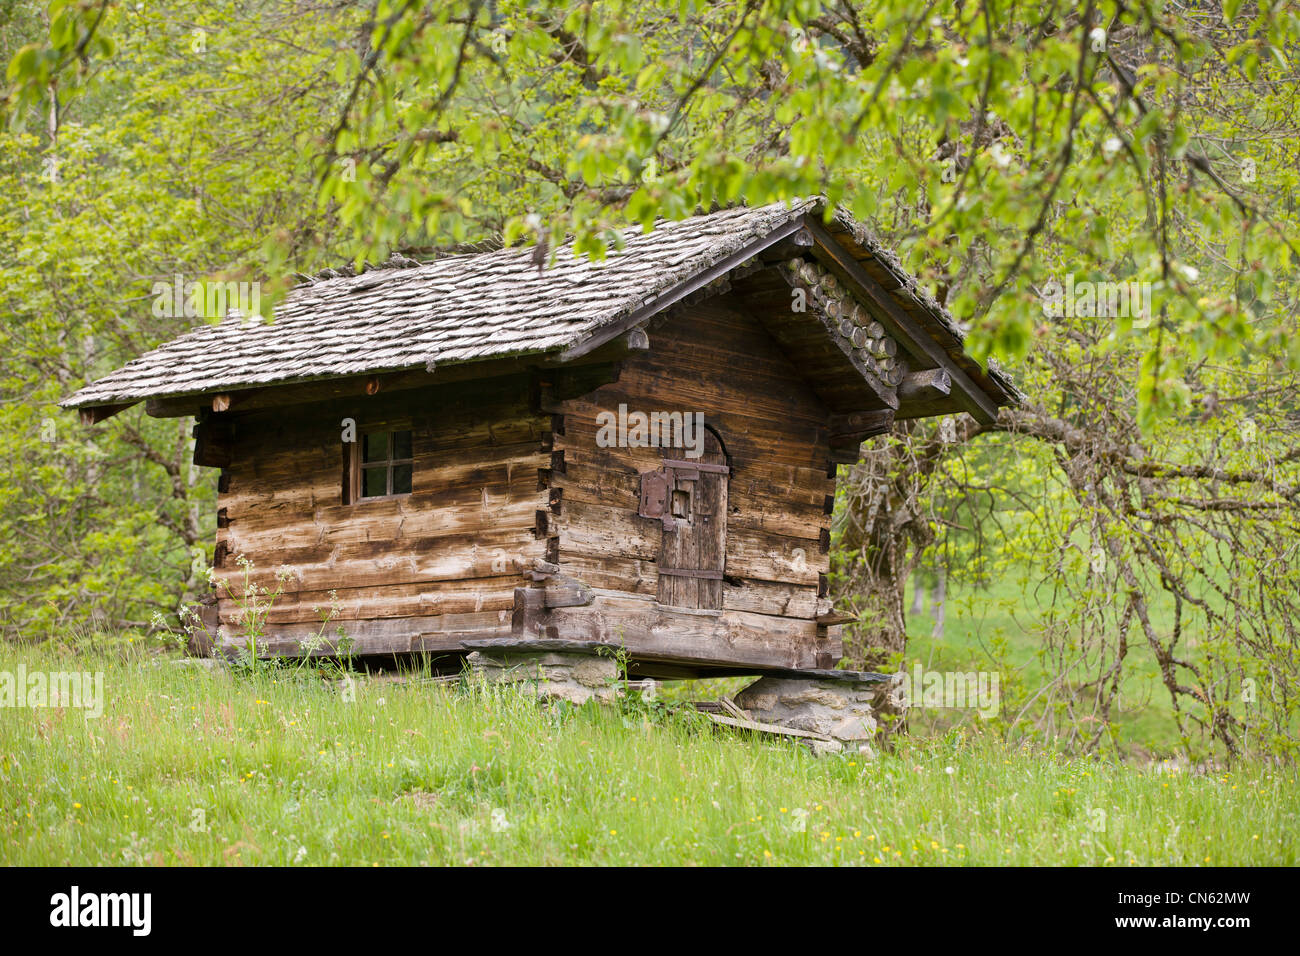 France, Haute Savoie, Les Houches, a chalet in the hamlet of high mountain pasture of Charousse - Stock Image